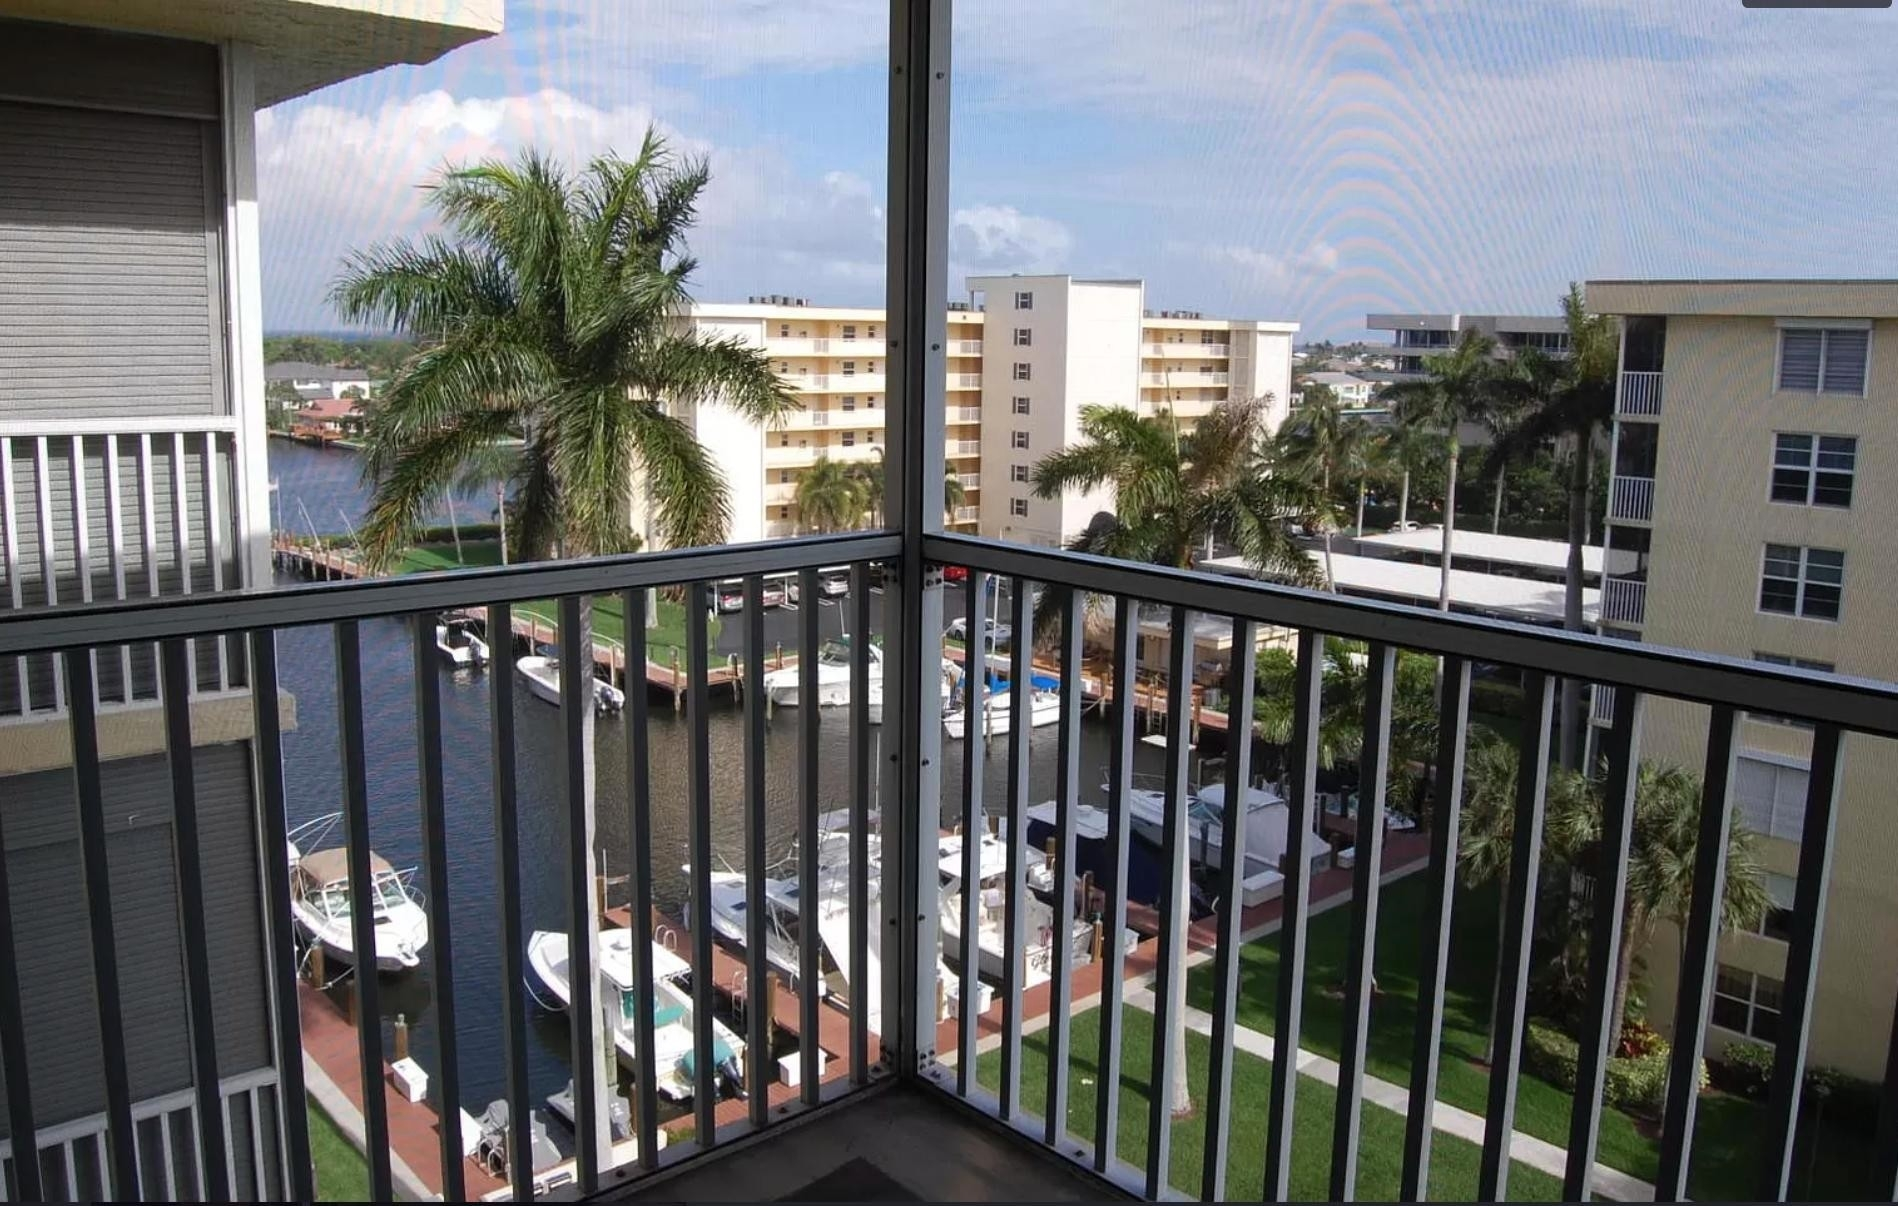 Condominium en 1 Harbourside Drive, 4704 Delray Beach, FL 33483